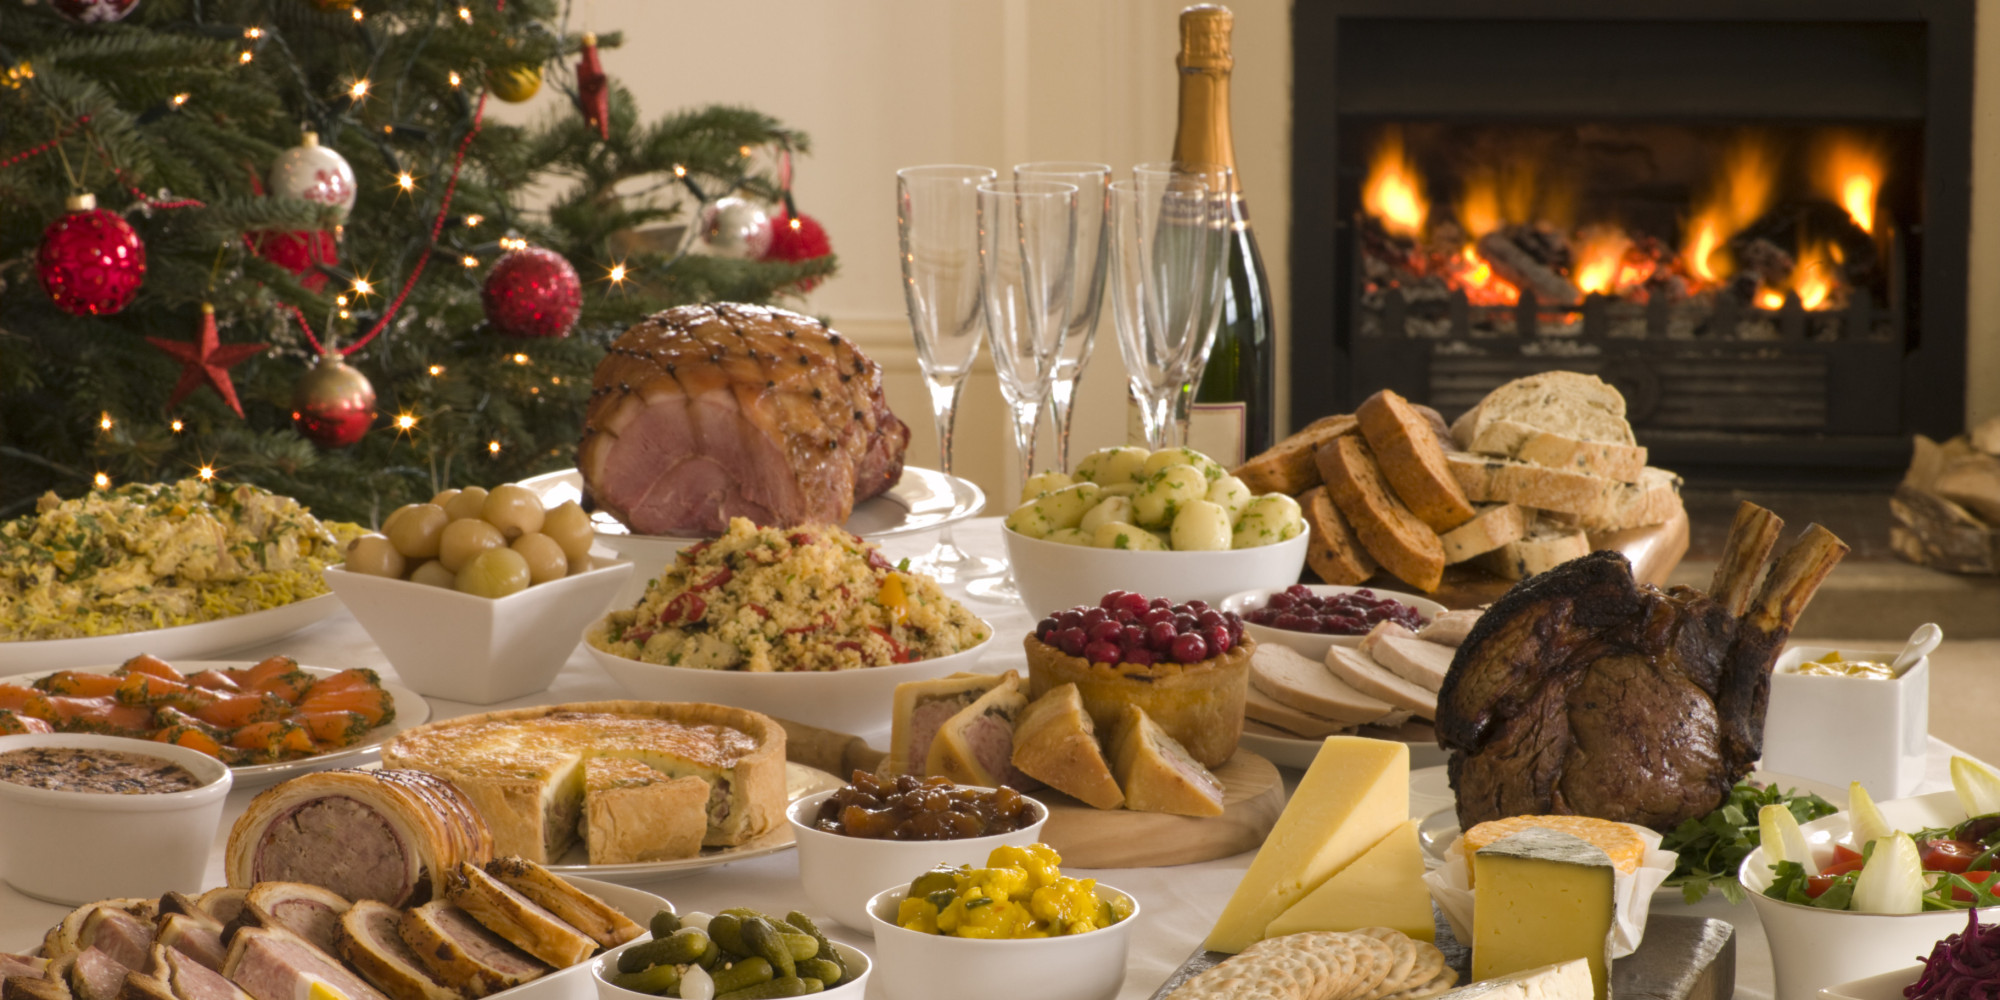 What's Eaten For Christmas Dinner Around The World?